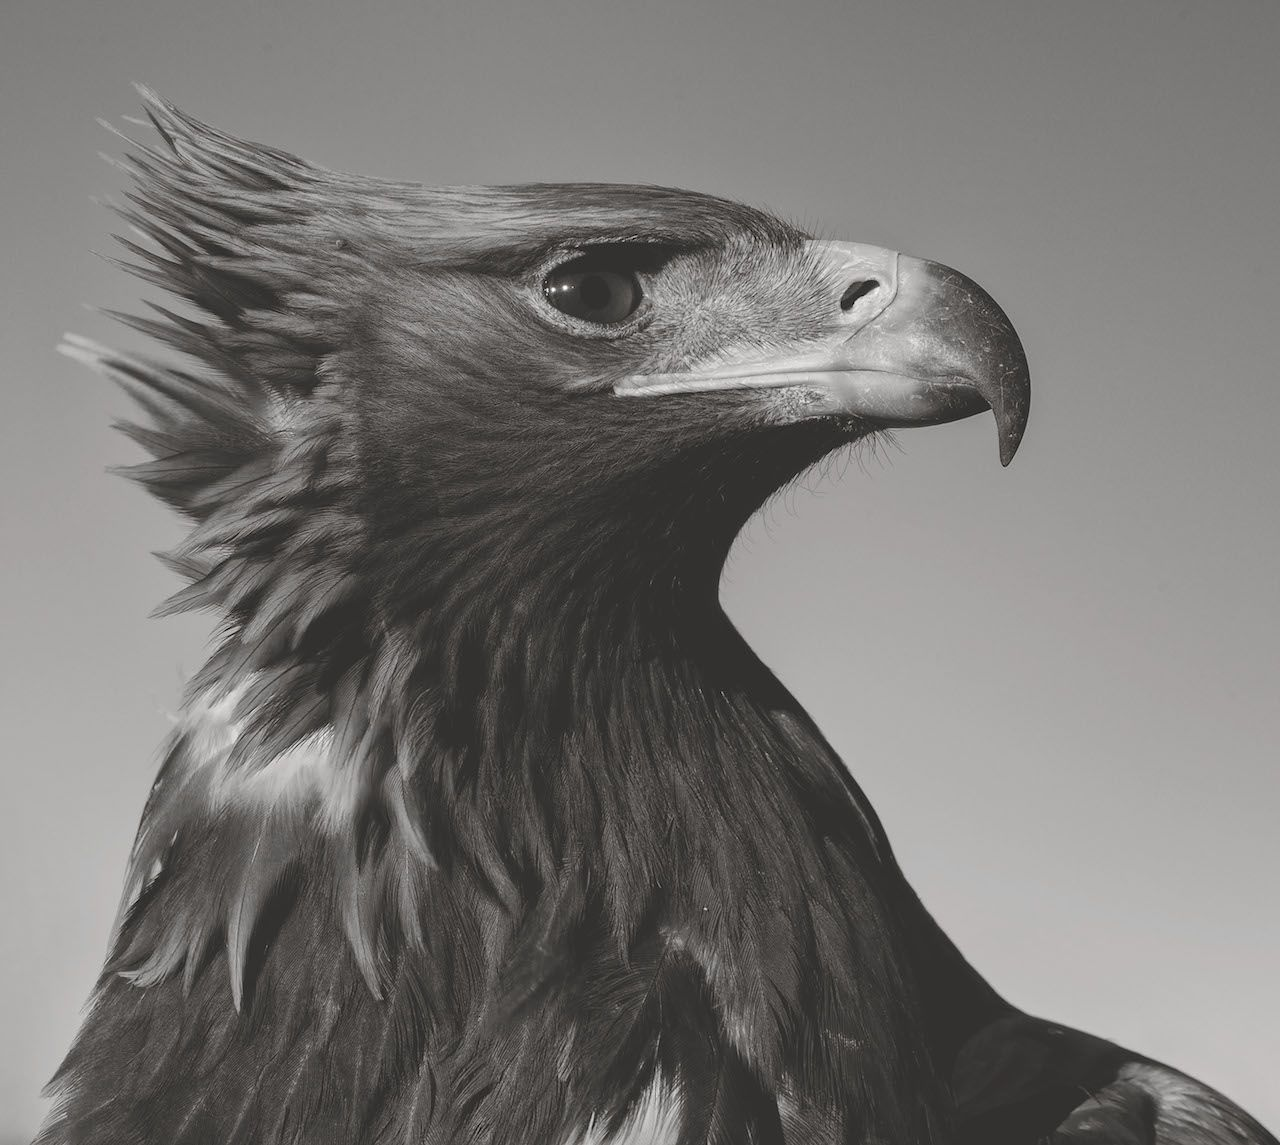 Photo by Palani Mohan from 'Hunting With Eagles: In the Realm of the Mongolian Kazakhs'